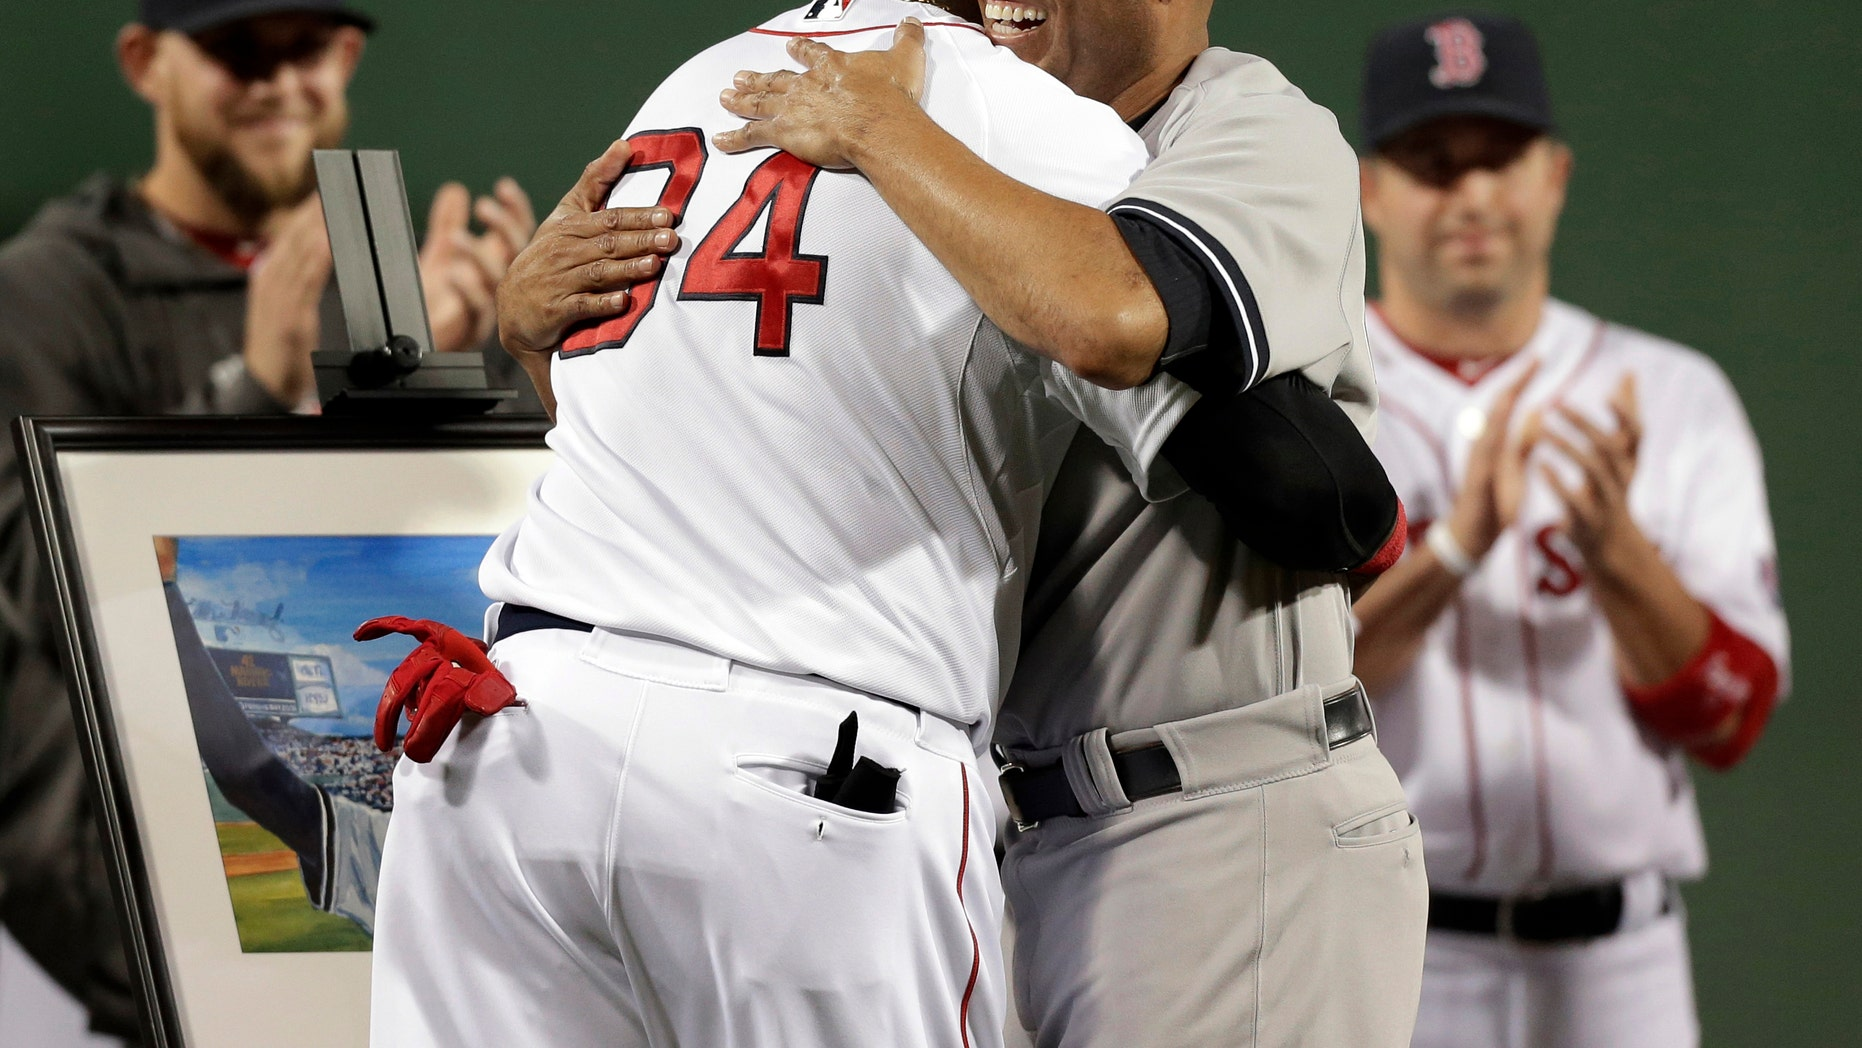 New York Yankees relief pitcher Mariano Rivera, right, hugs Boston Red Sox's David Ortiz during a tribute for Rivera before the start of a baseball game at Fenway Park, in Boston, Sunday, Sept. 15, 2013.